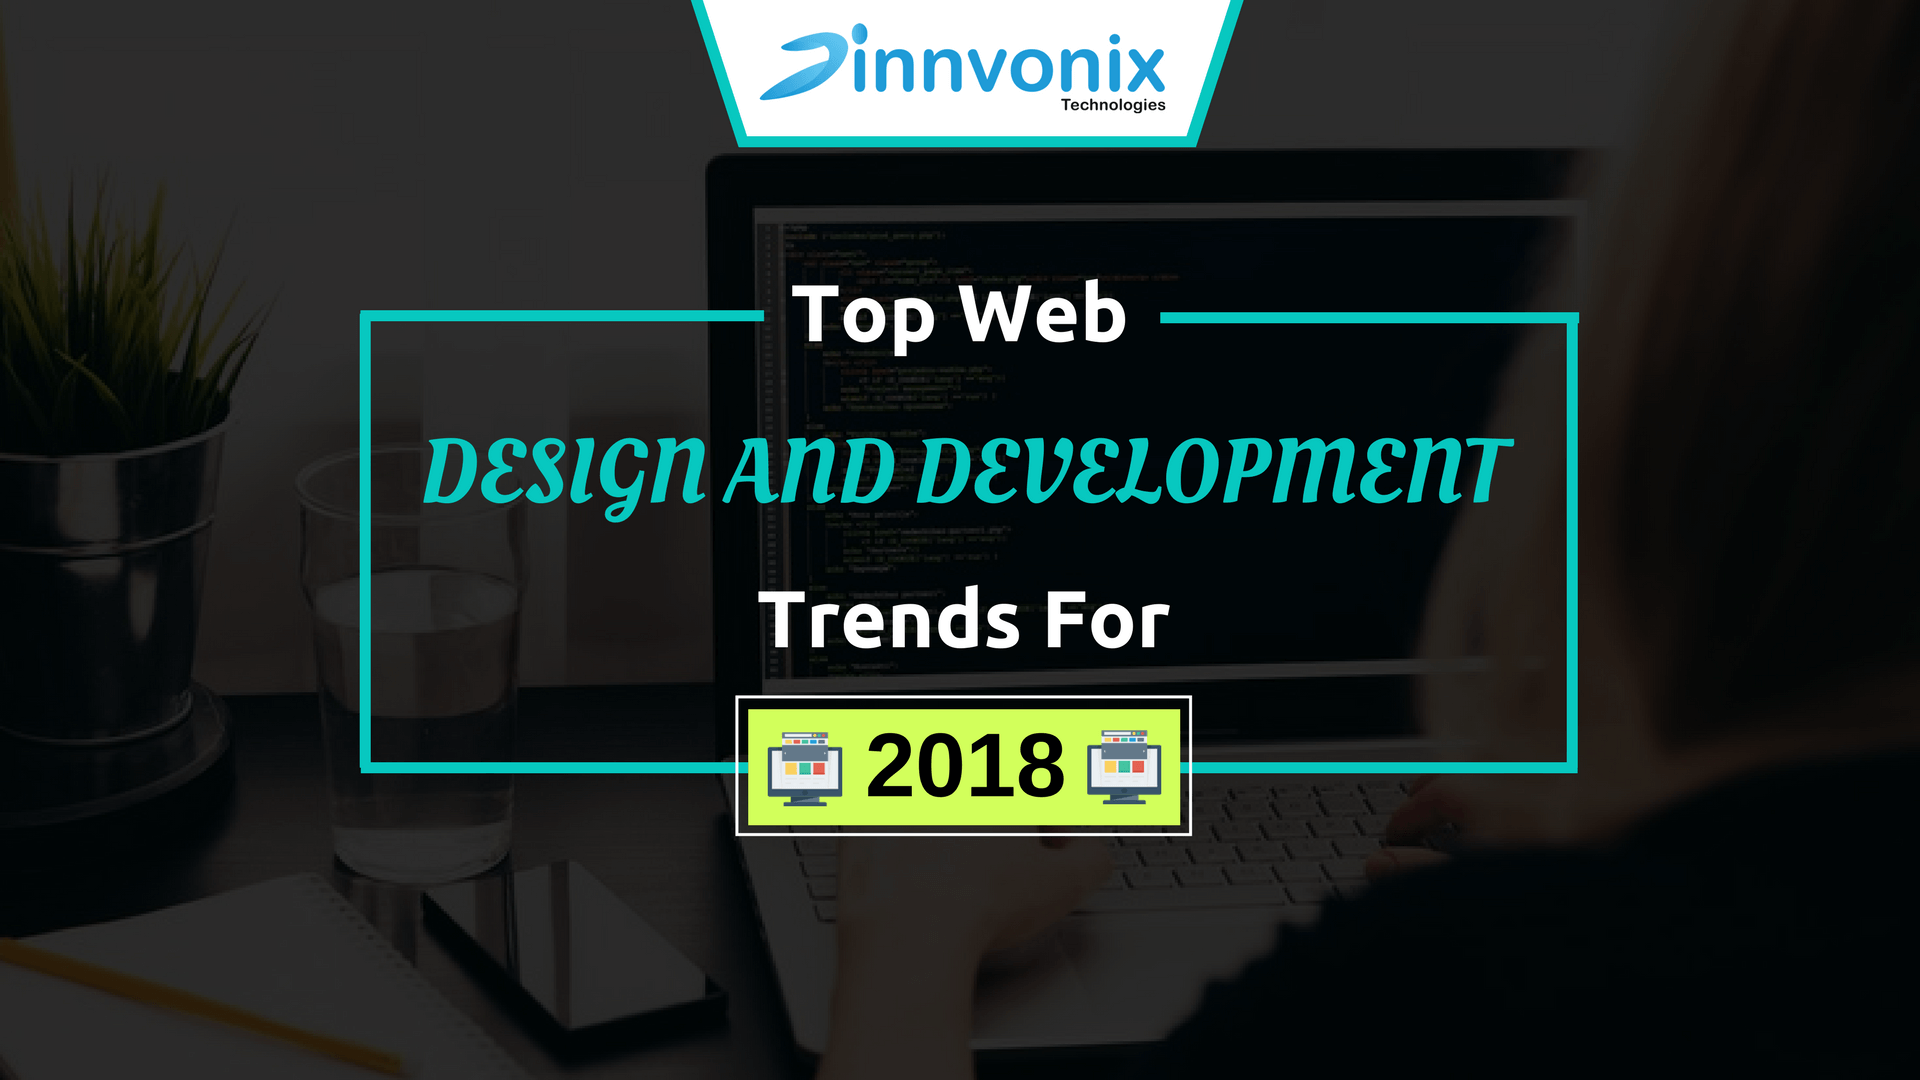 Top Web Design And Development Trends 2018